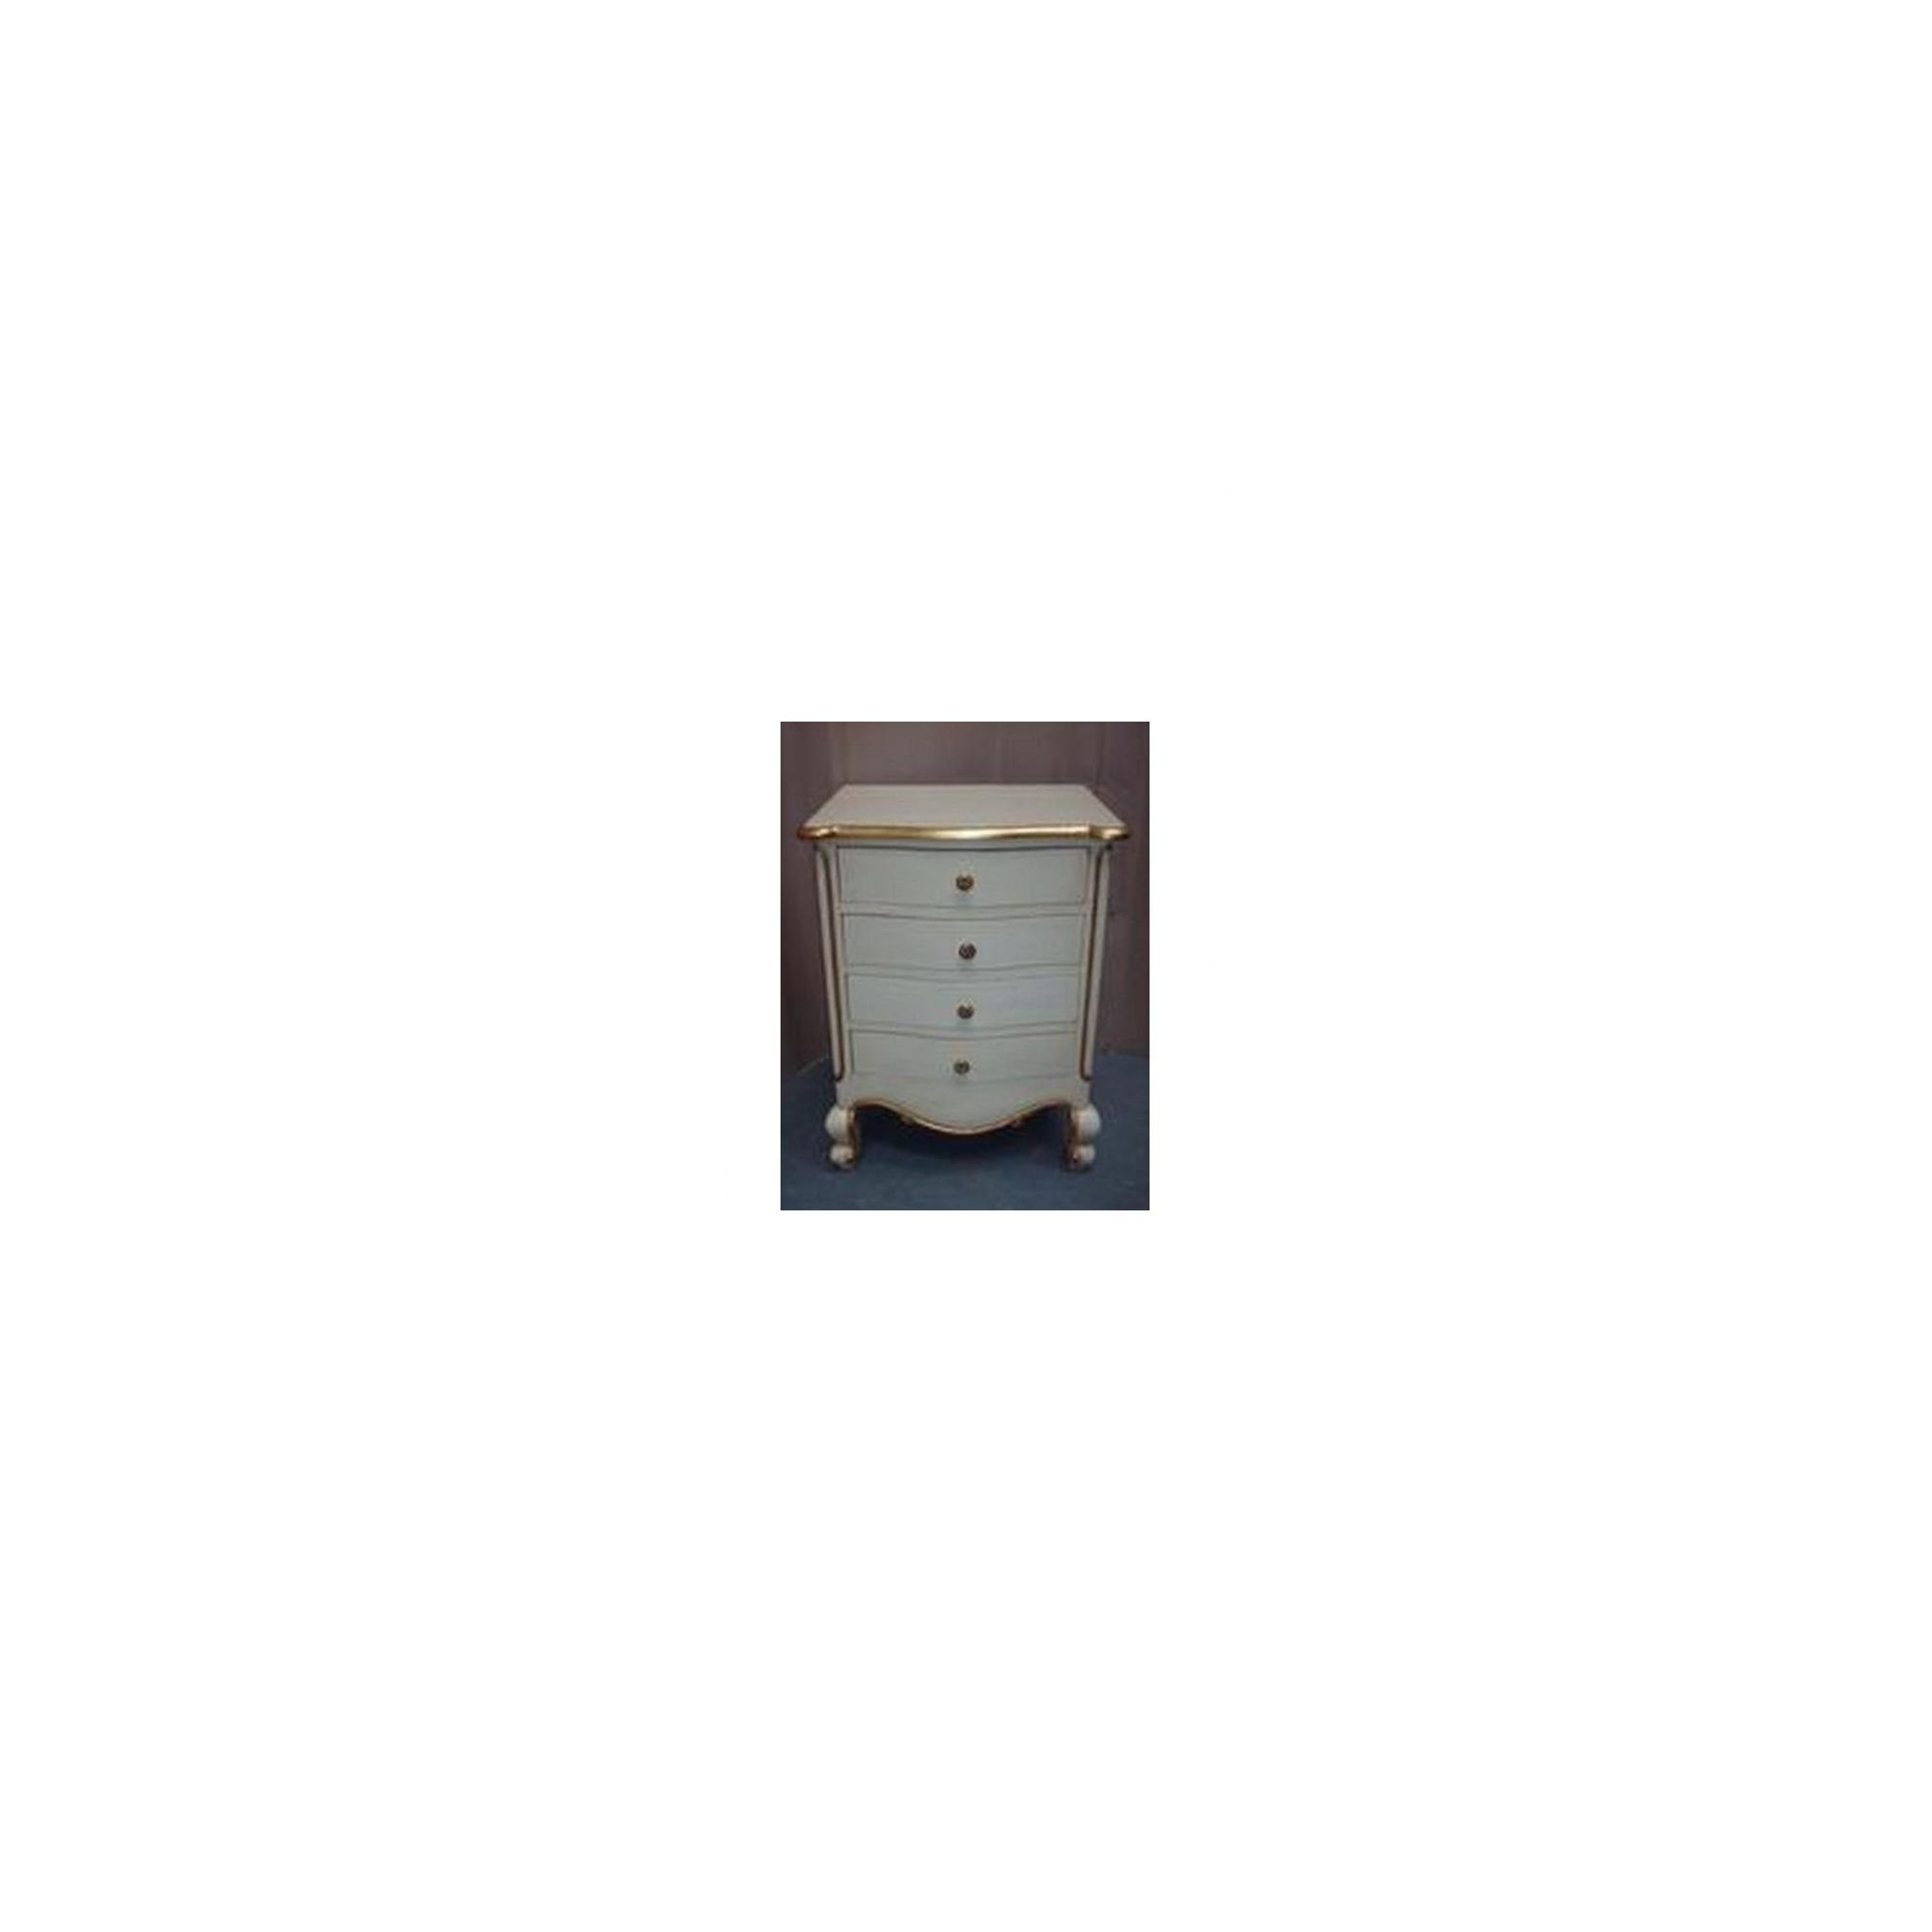 Lock stock and barrel Mahogany Louis 4 Drawer Bedside Table in Mahogany - Antique White at Tesco Direct